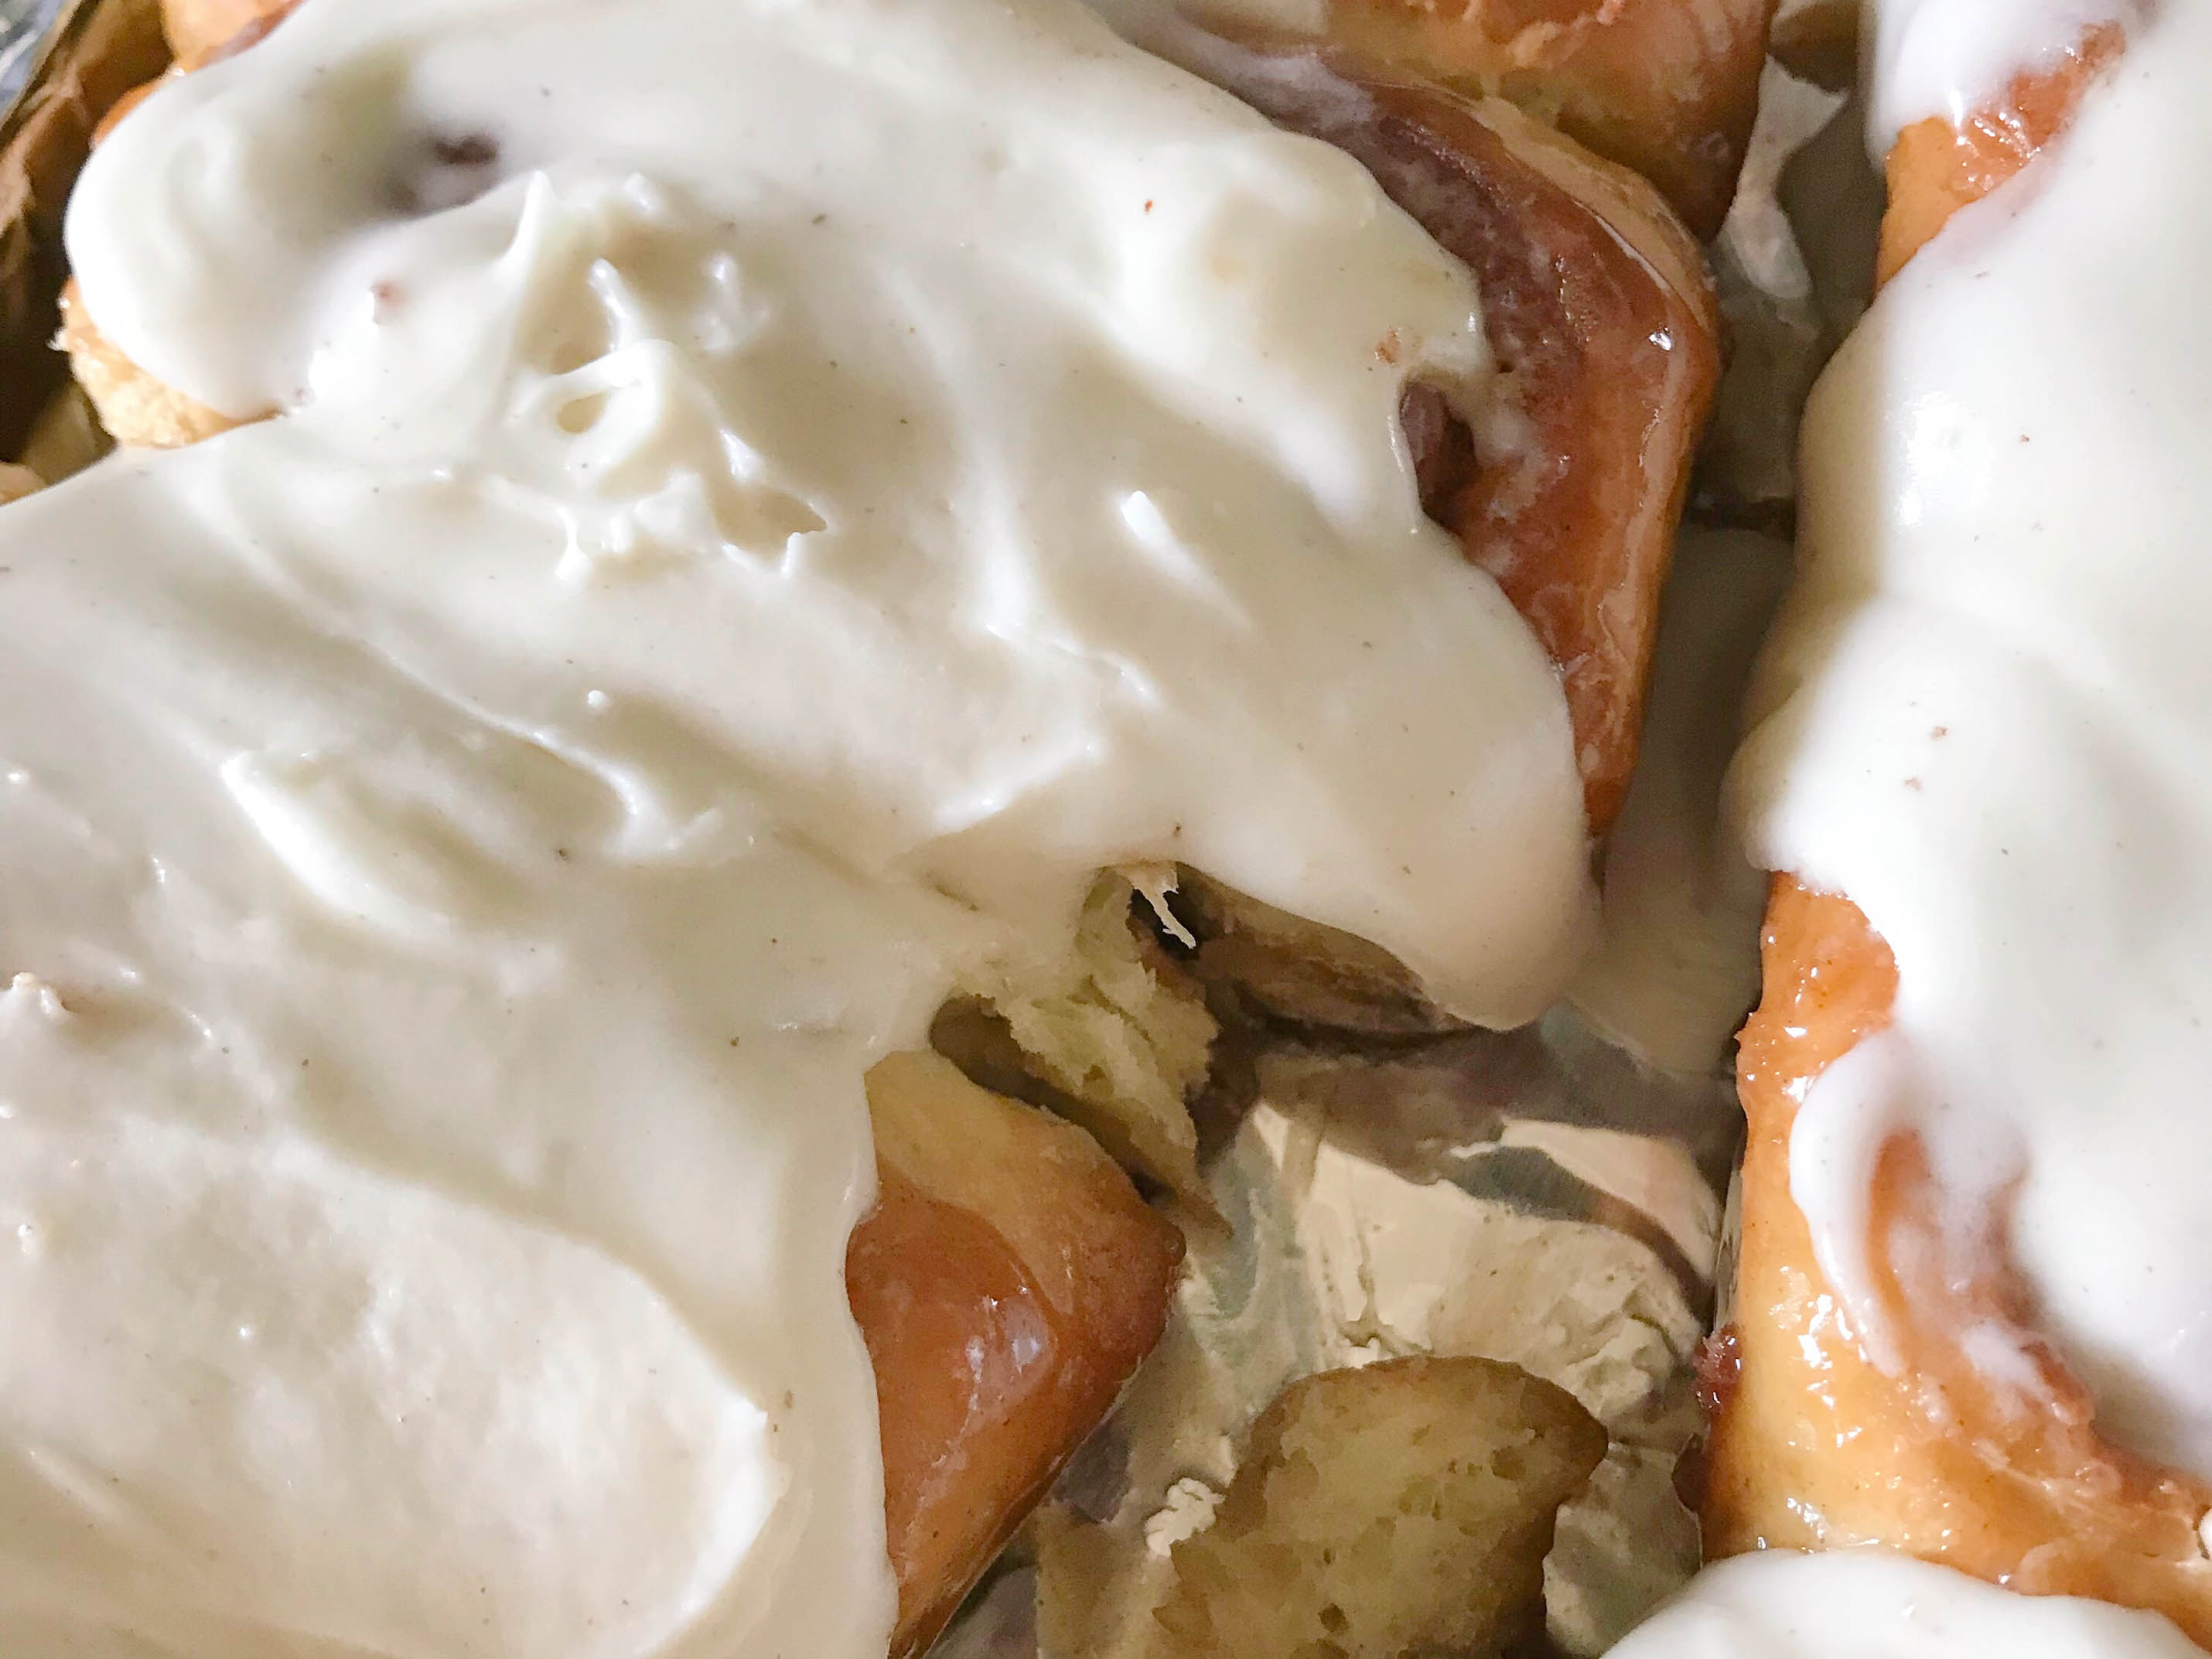 Best Cream Cheese Frosting for Cinnamon Rolls